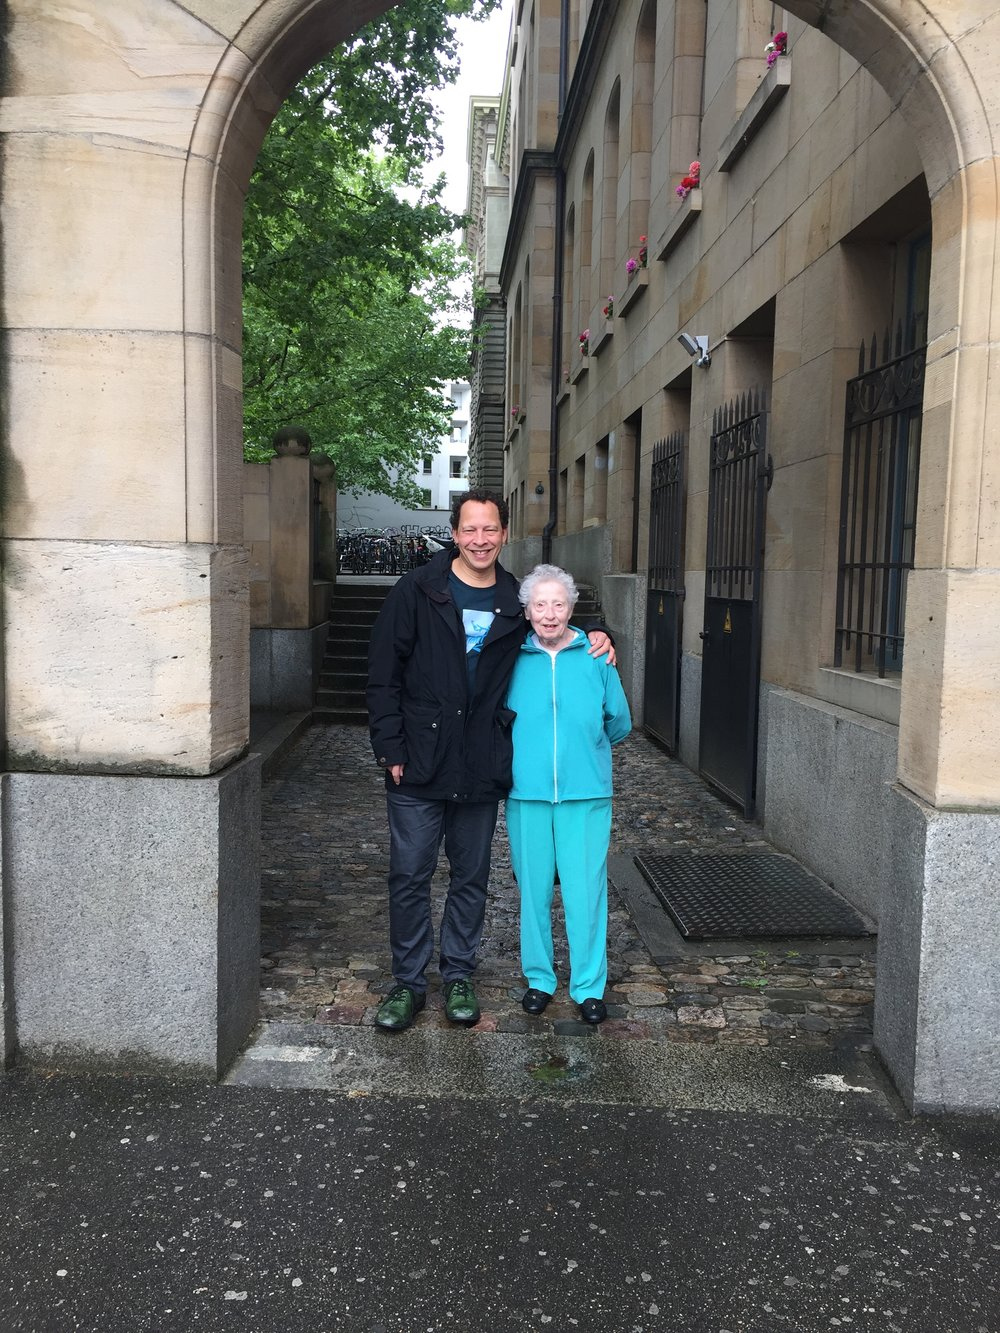 Donna Hill and her son Lawrence Hill in Basel, Switzerland in May 2018 (Photo courtesy of Lawrence Hill)